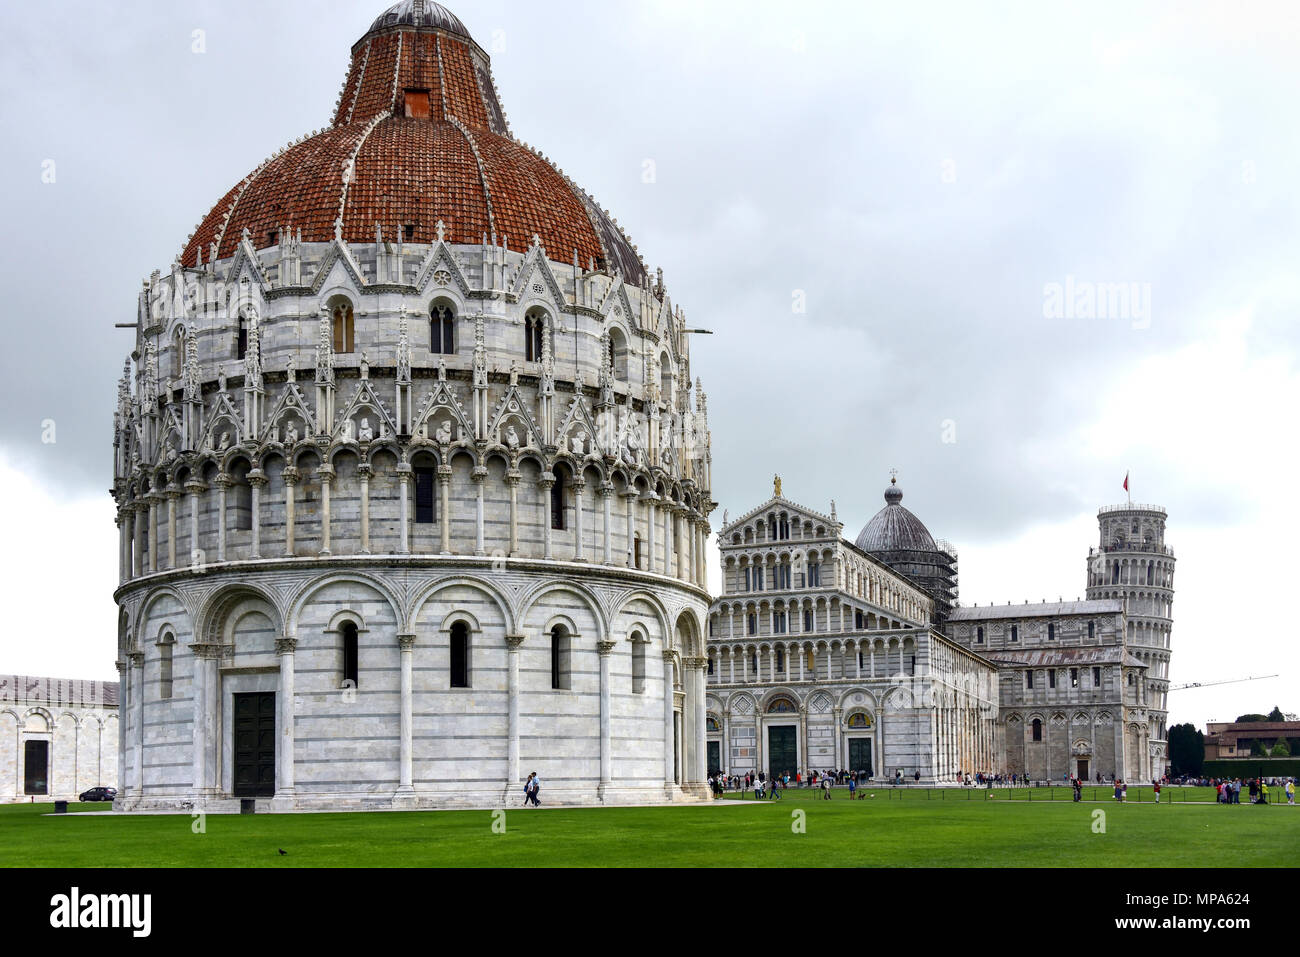 The Pisa Baptistery, the Pisa Cathedral and the Tower of Pisa located in the Piazza dei Miracoli (Square of Miracles) in Pisa, Italy. - Stock Image